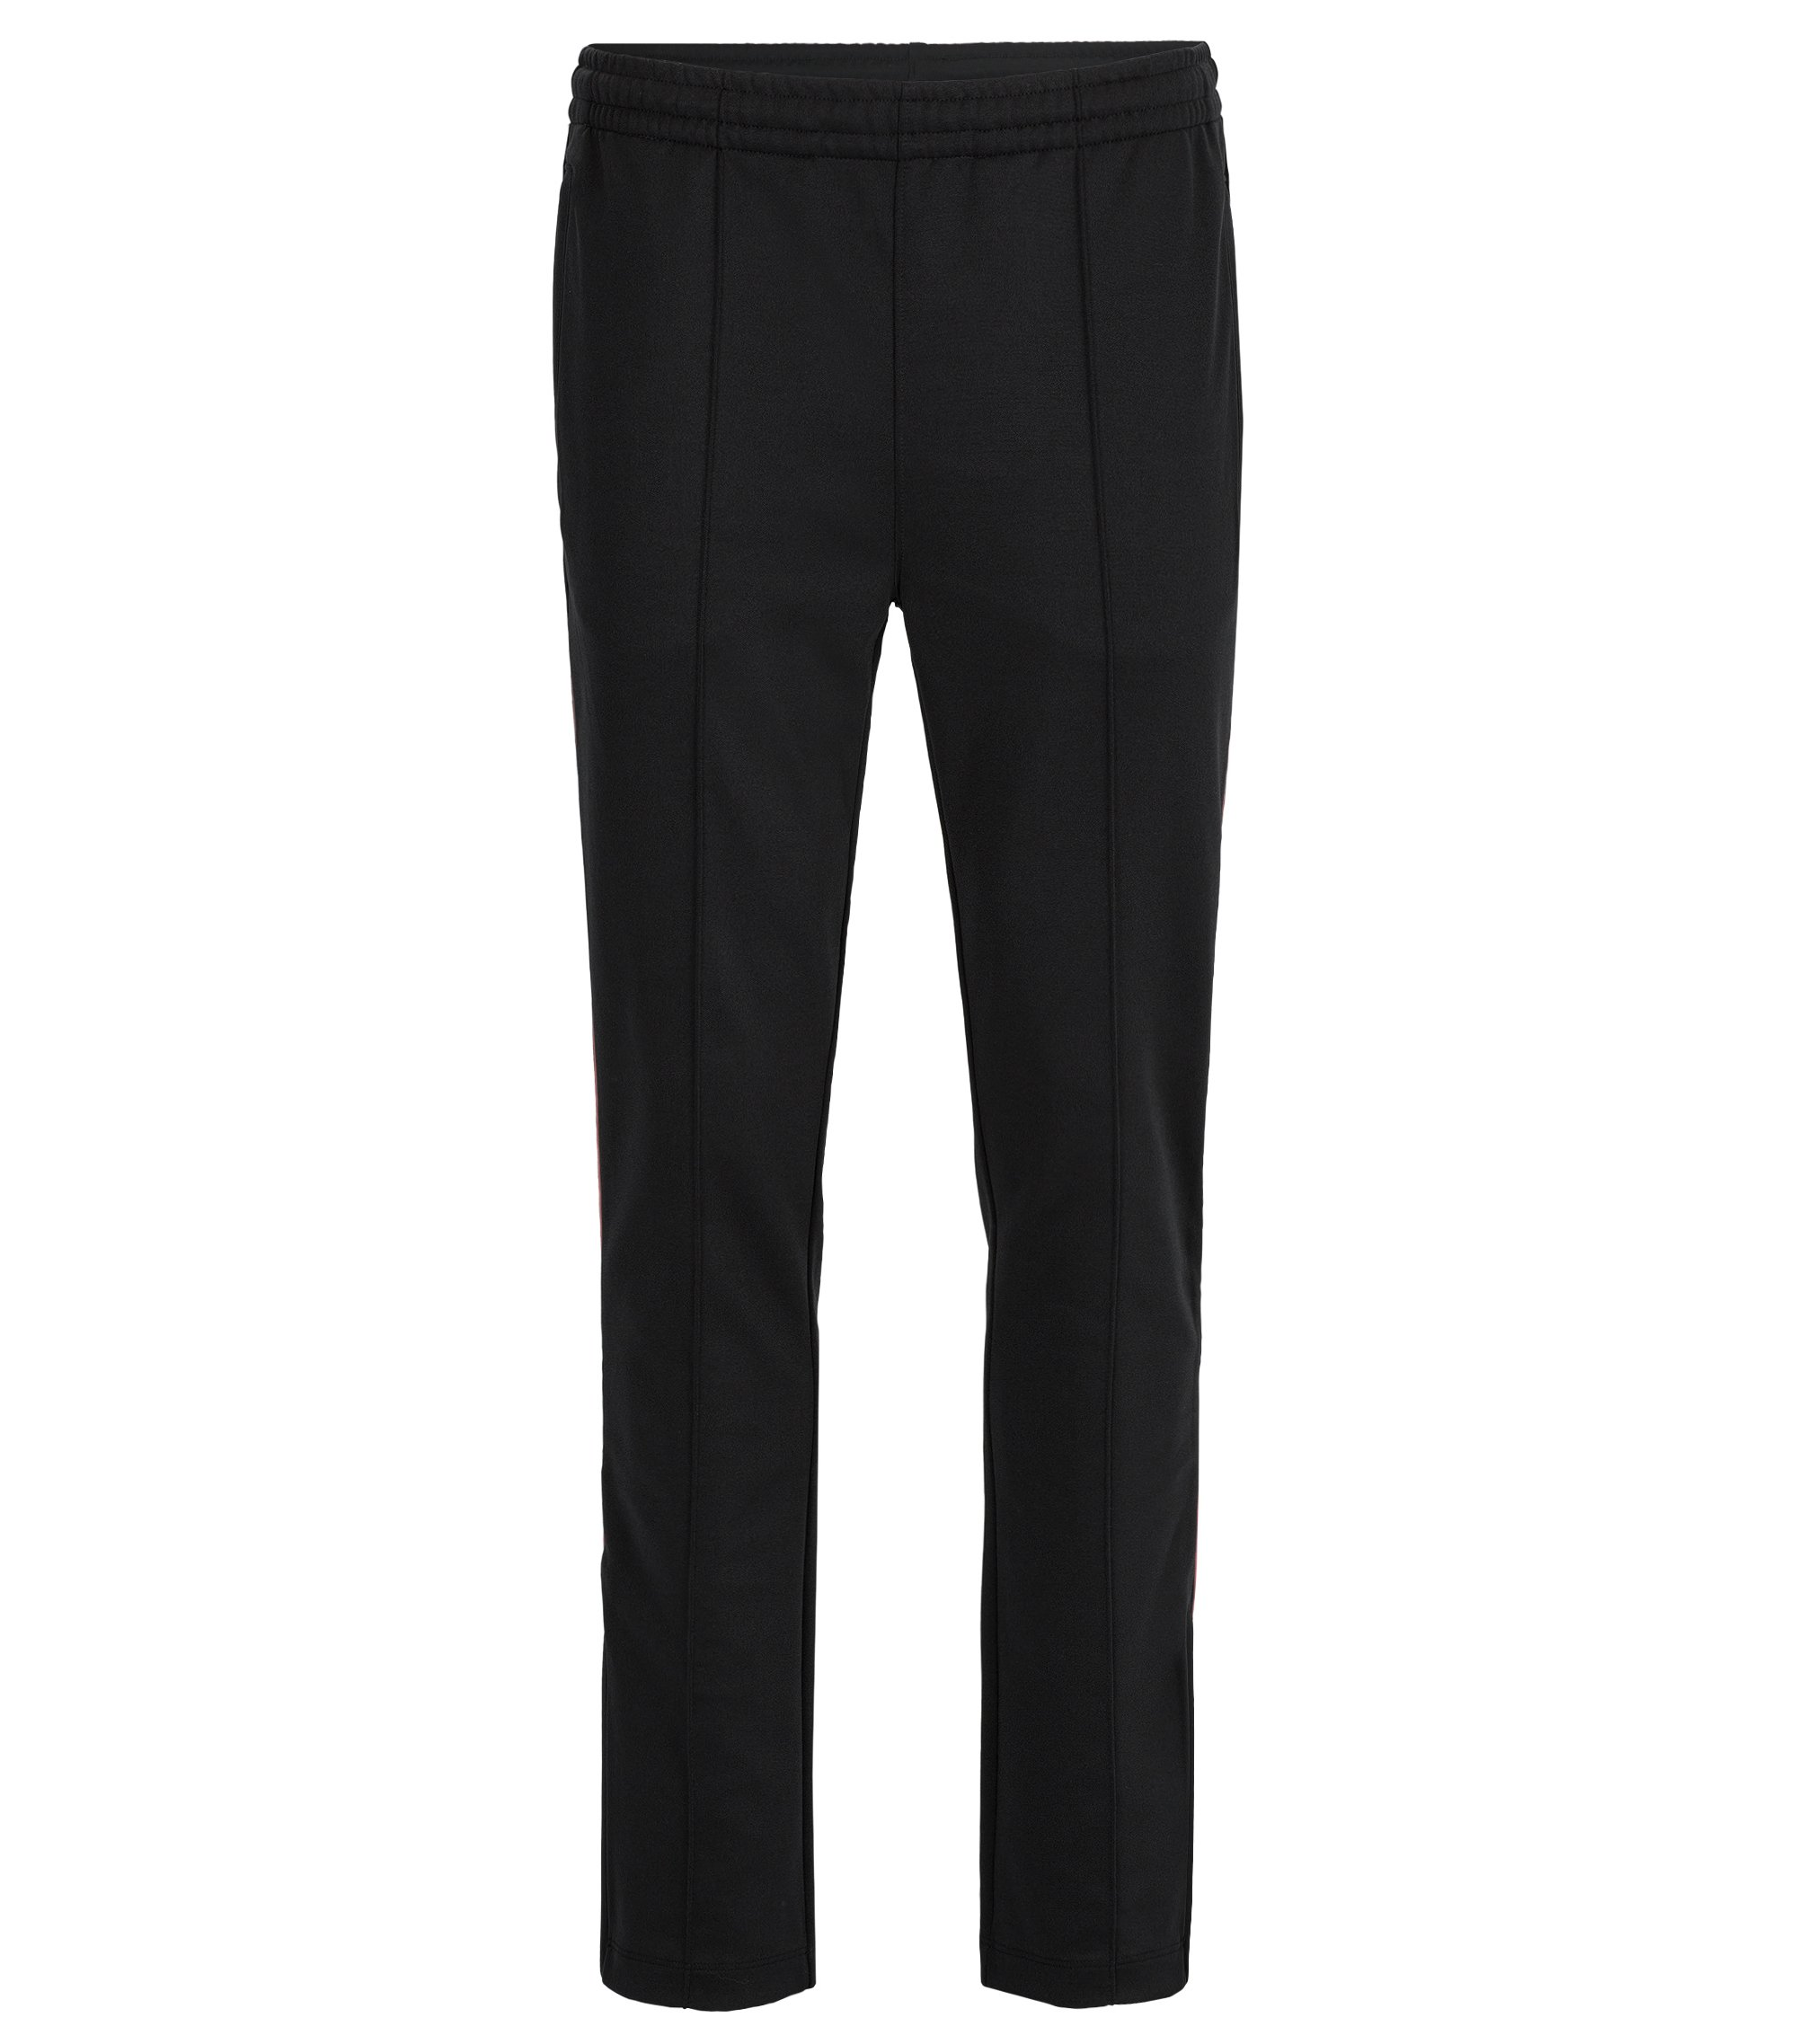 Stretch Cotton Broken Twill Pant, Slim Fit | Lamont, Black